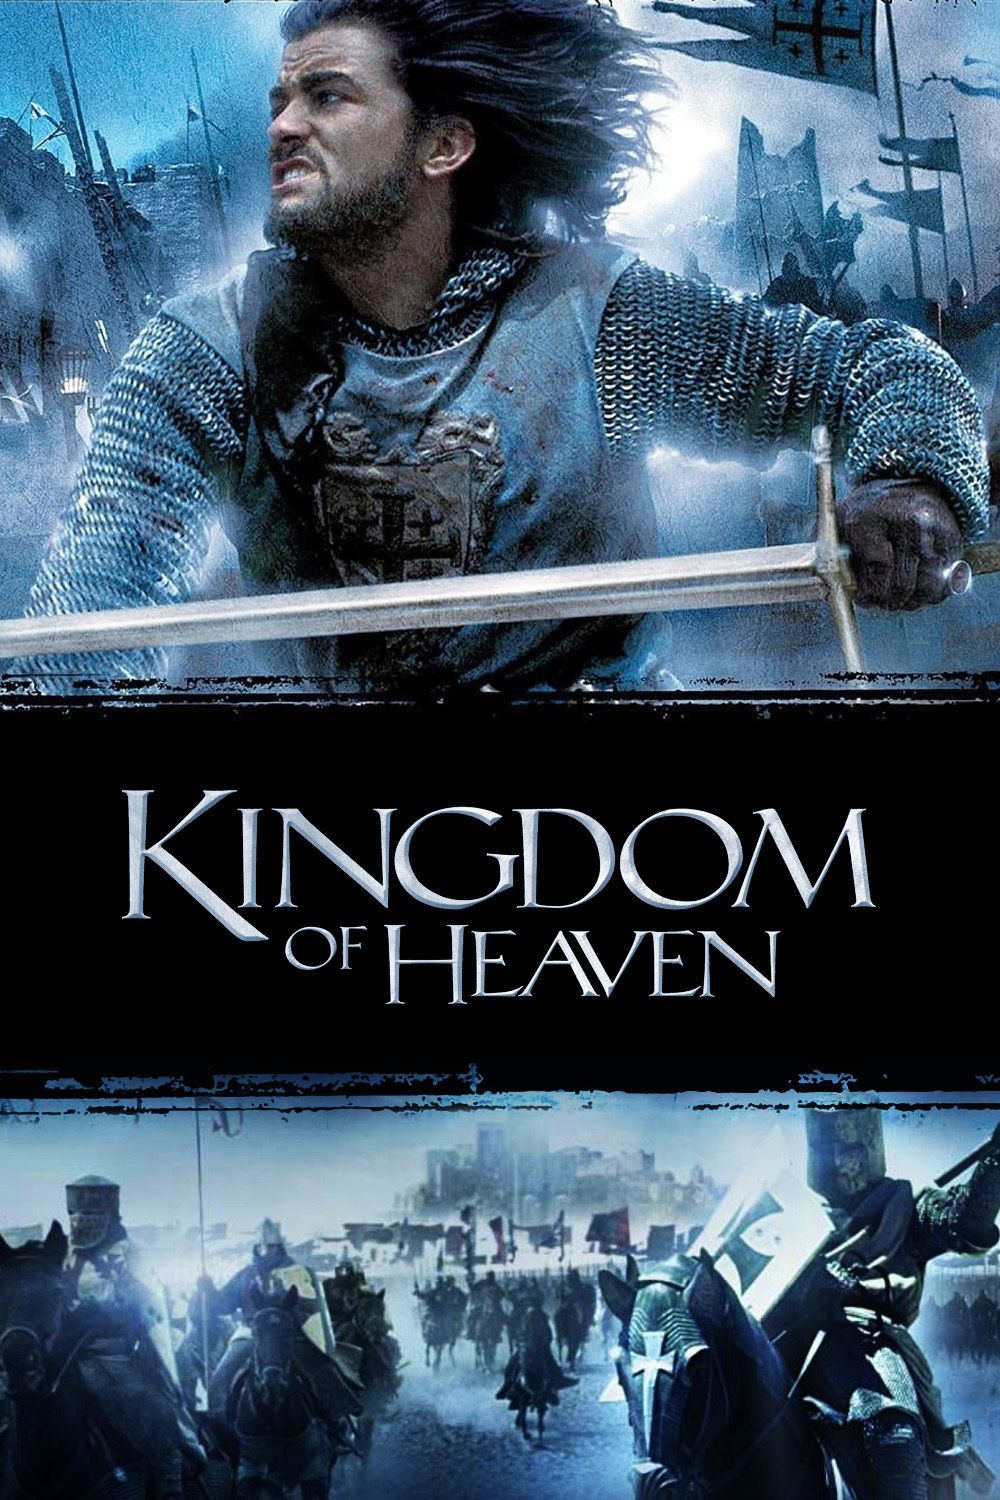 Kingdom of Heaven – Decent, even quite good but depressing ...